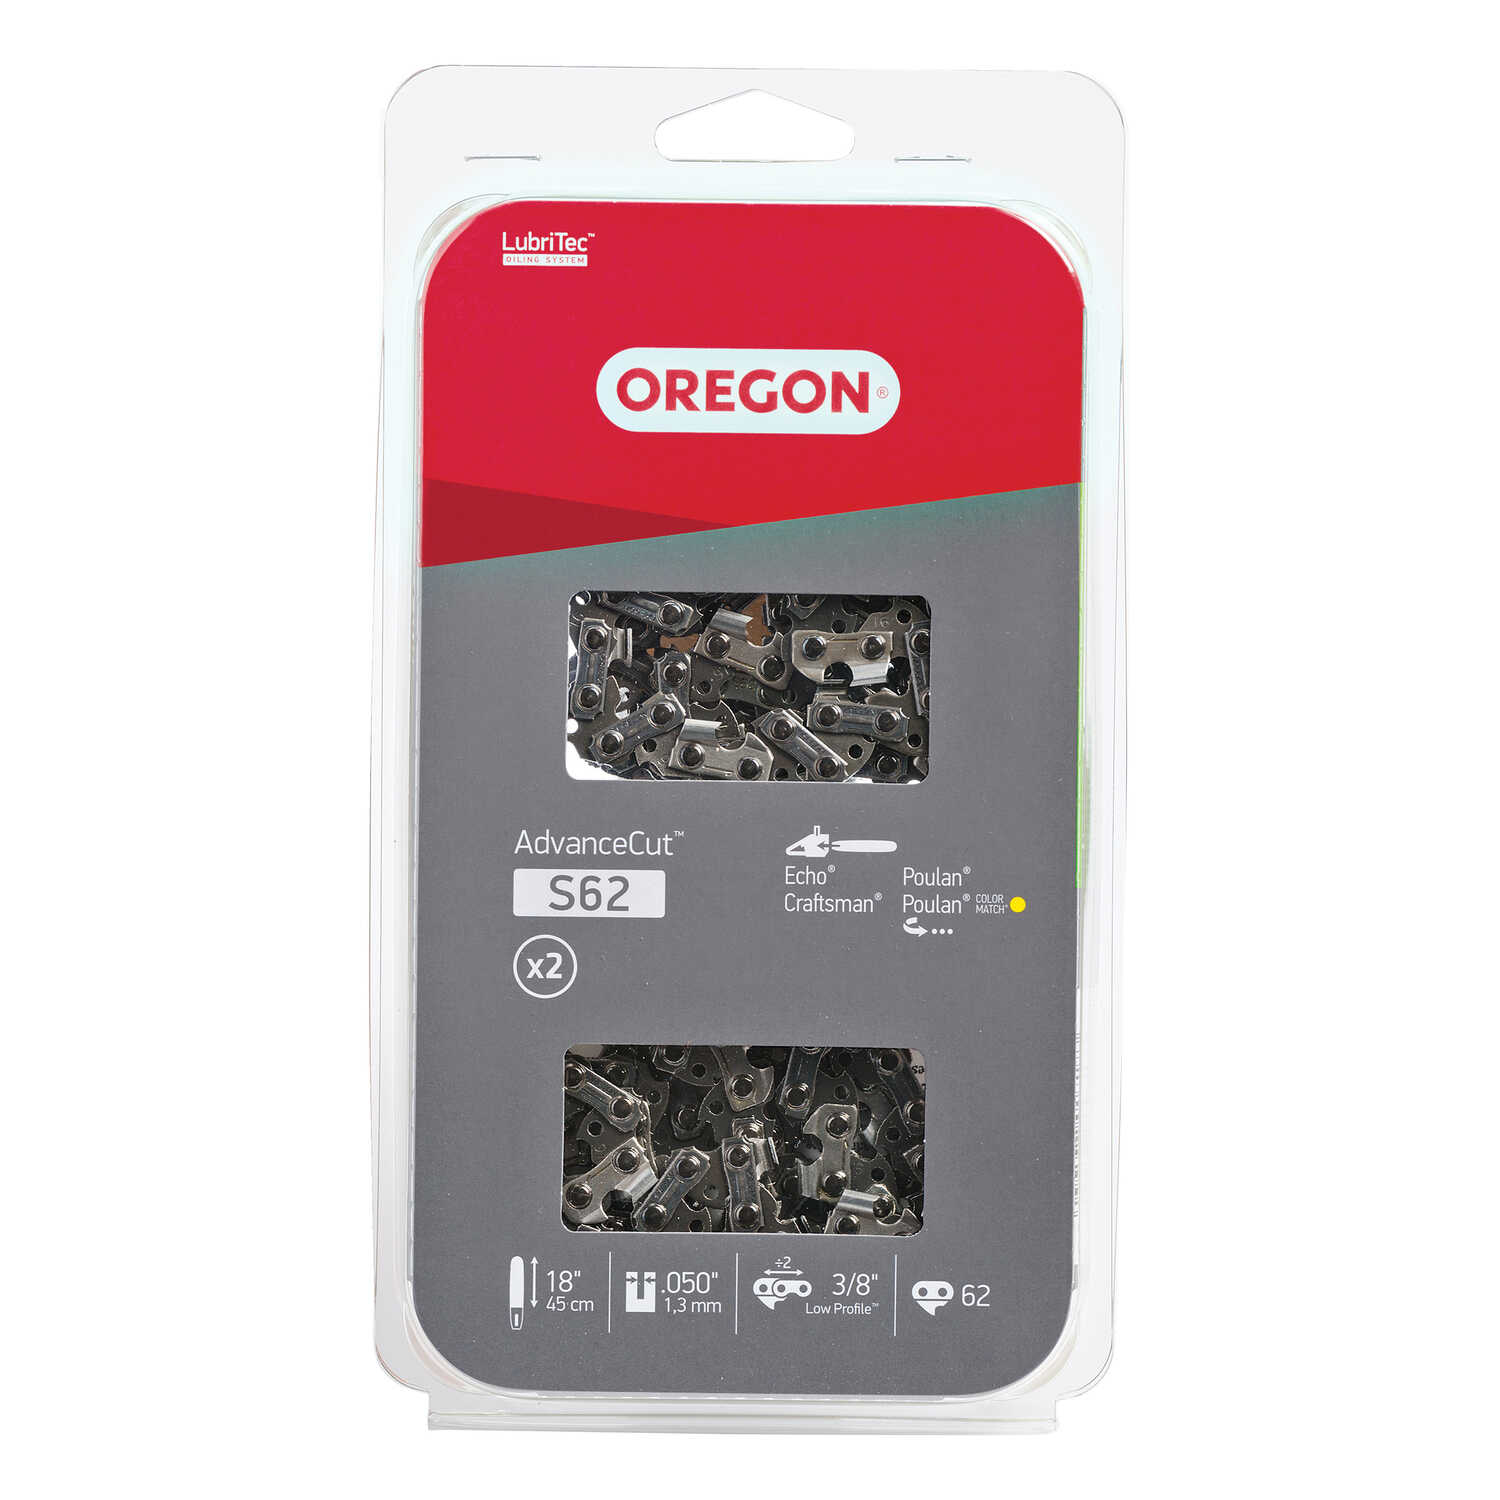 Oregon  Advance Cut  18 in. 62 links Chainsaw Chain